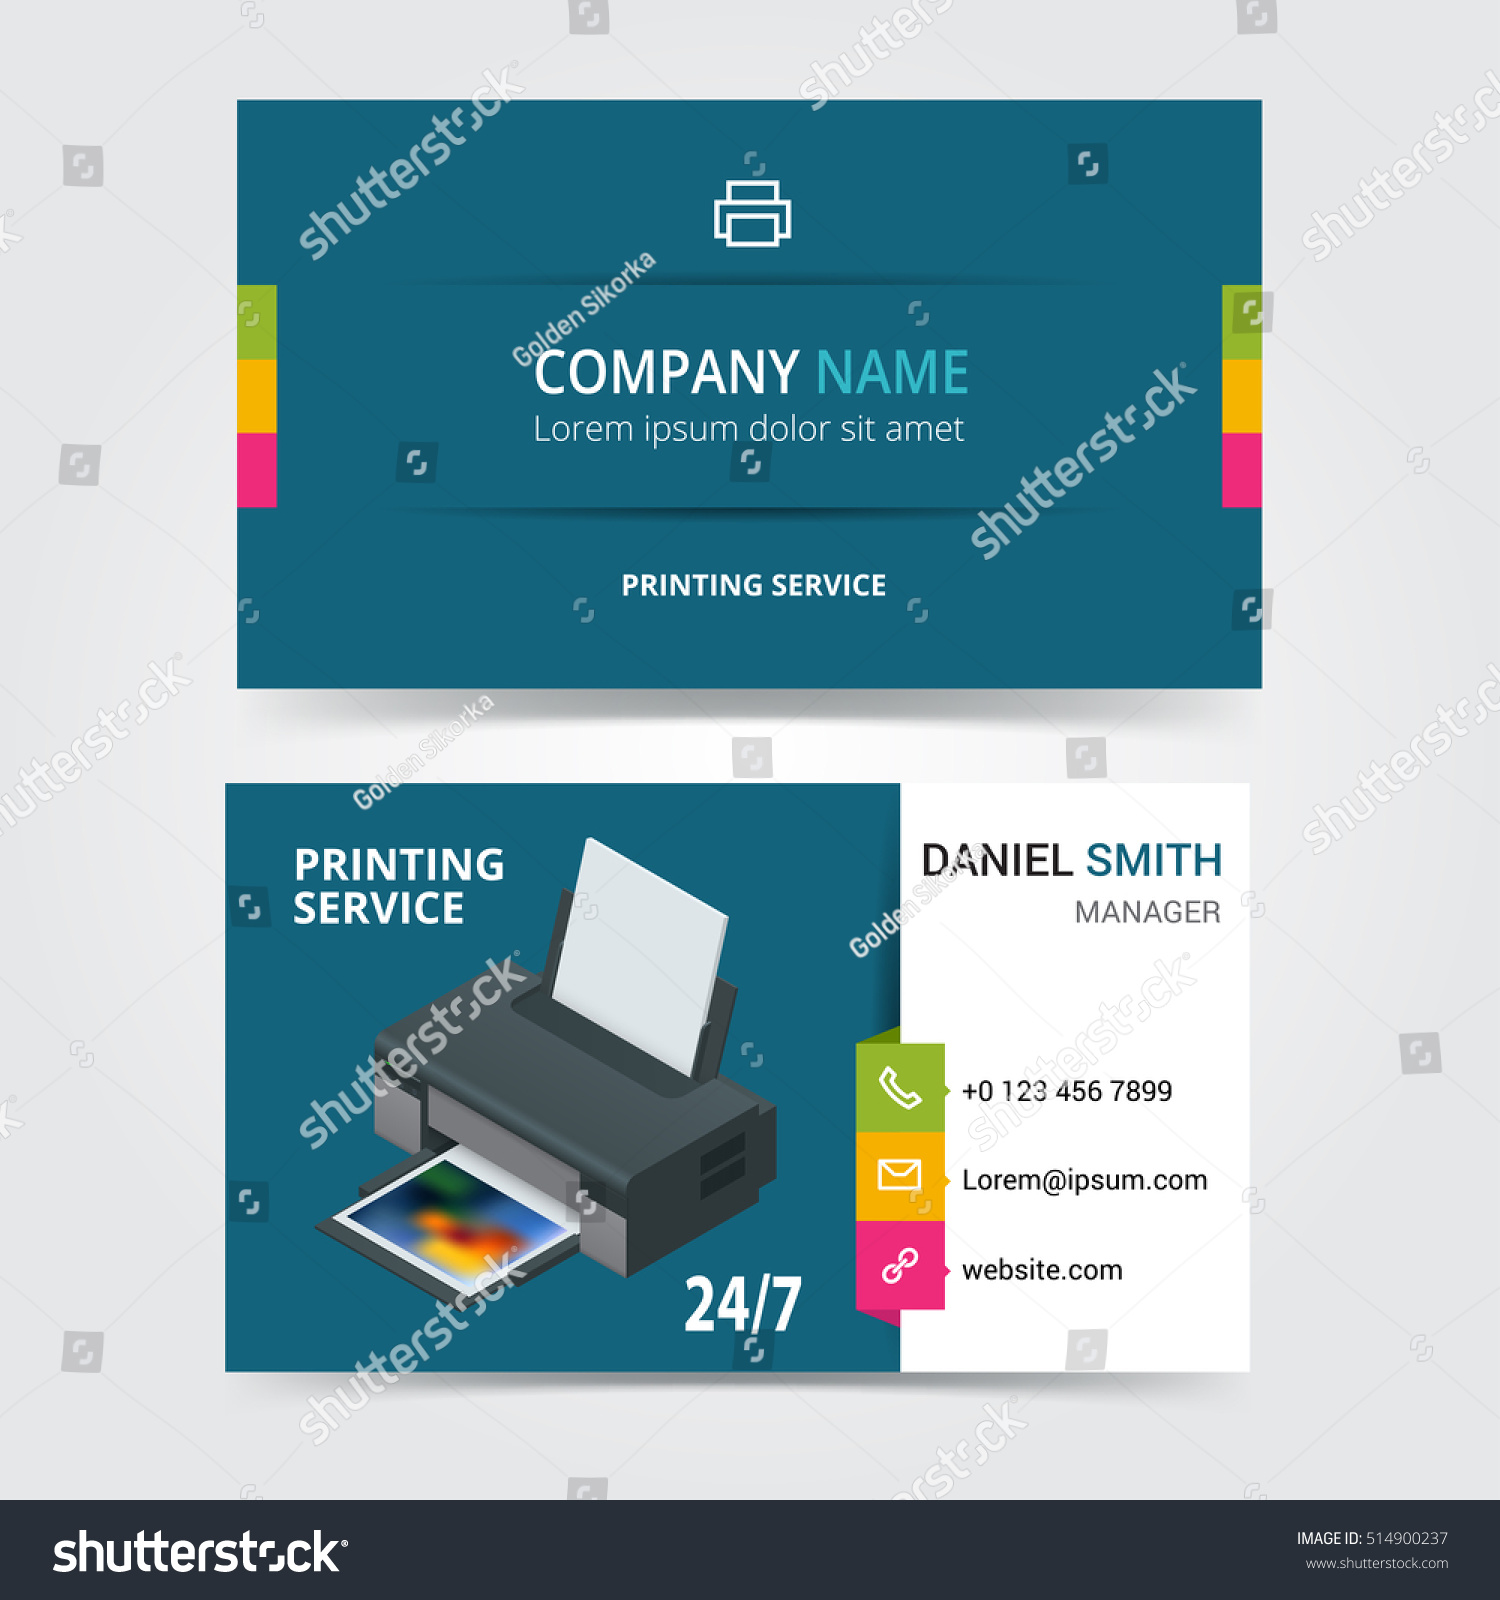 Business card printing in fourways gallery card design and card business card printing fourways gallery card design and card template express business card printing london images reheart Image collections